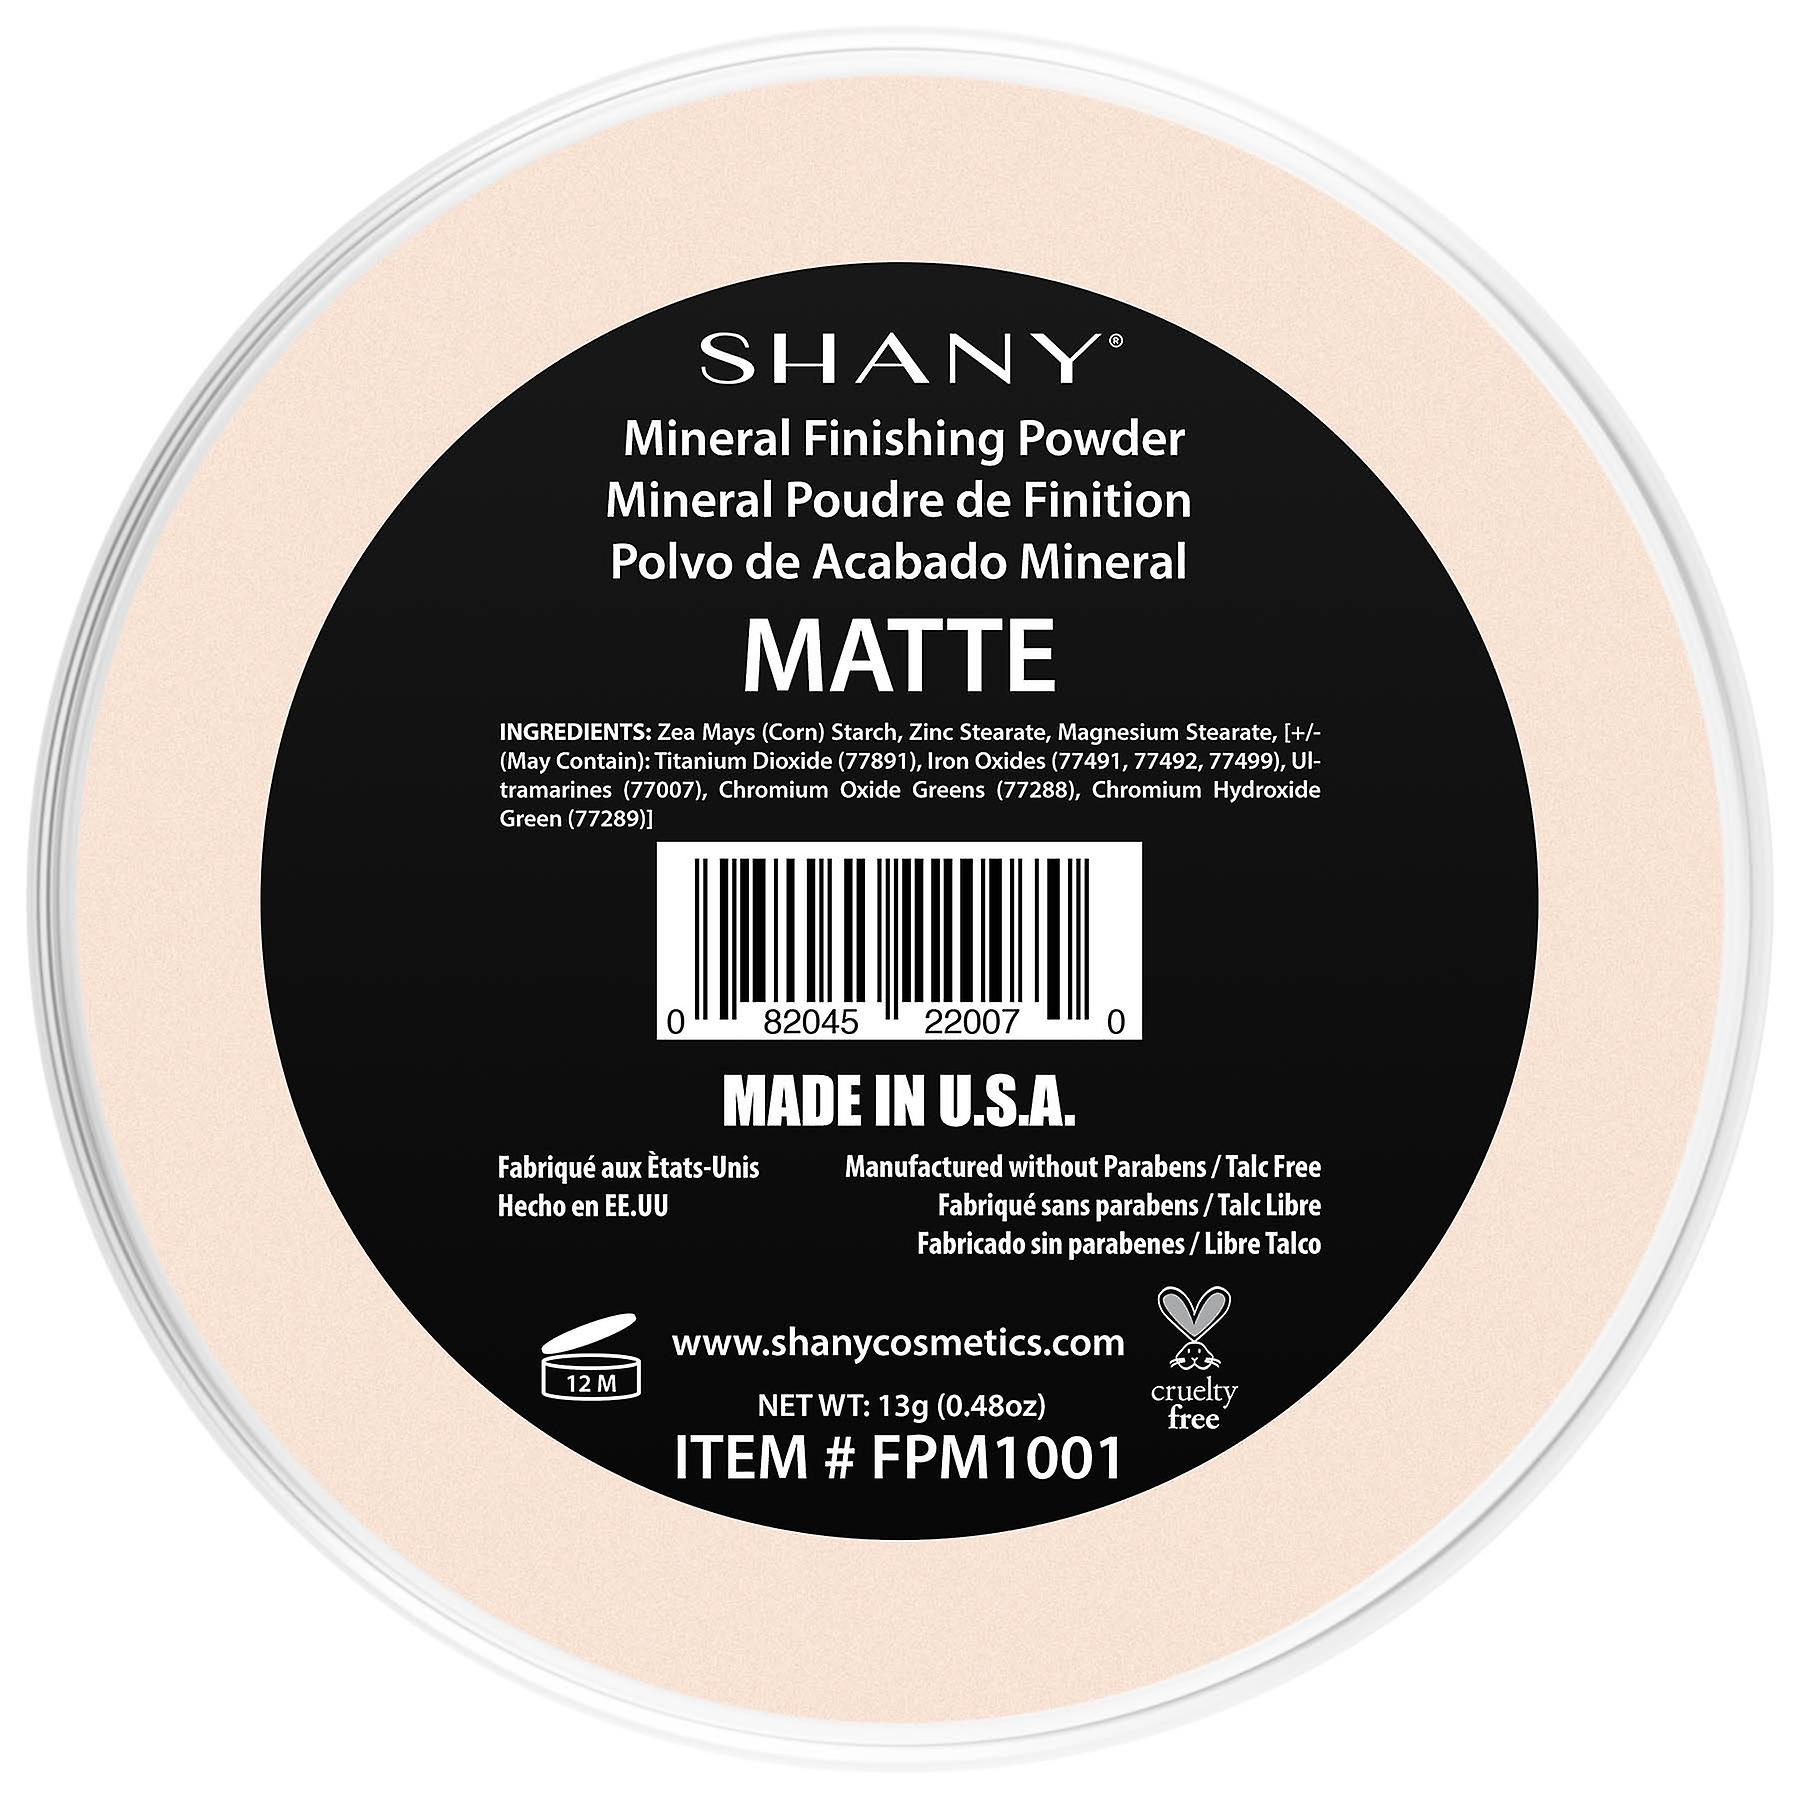 SHANY Mineral Finishing Powder - Paraben Free/Talc Free